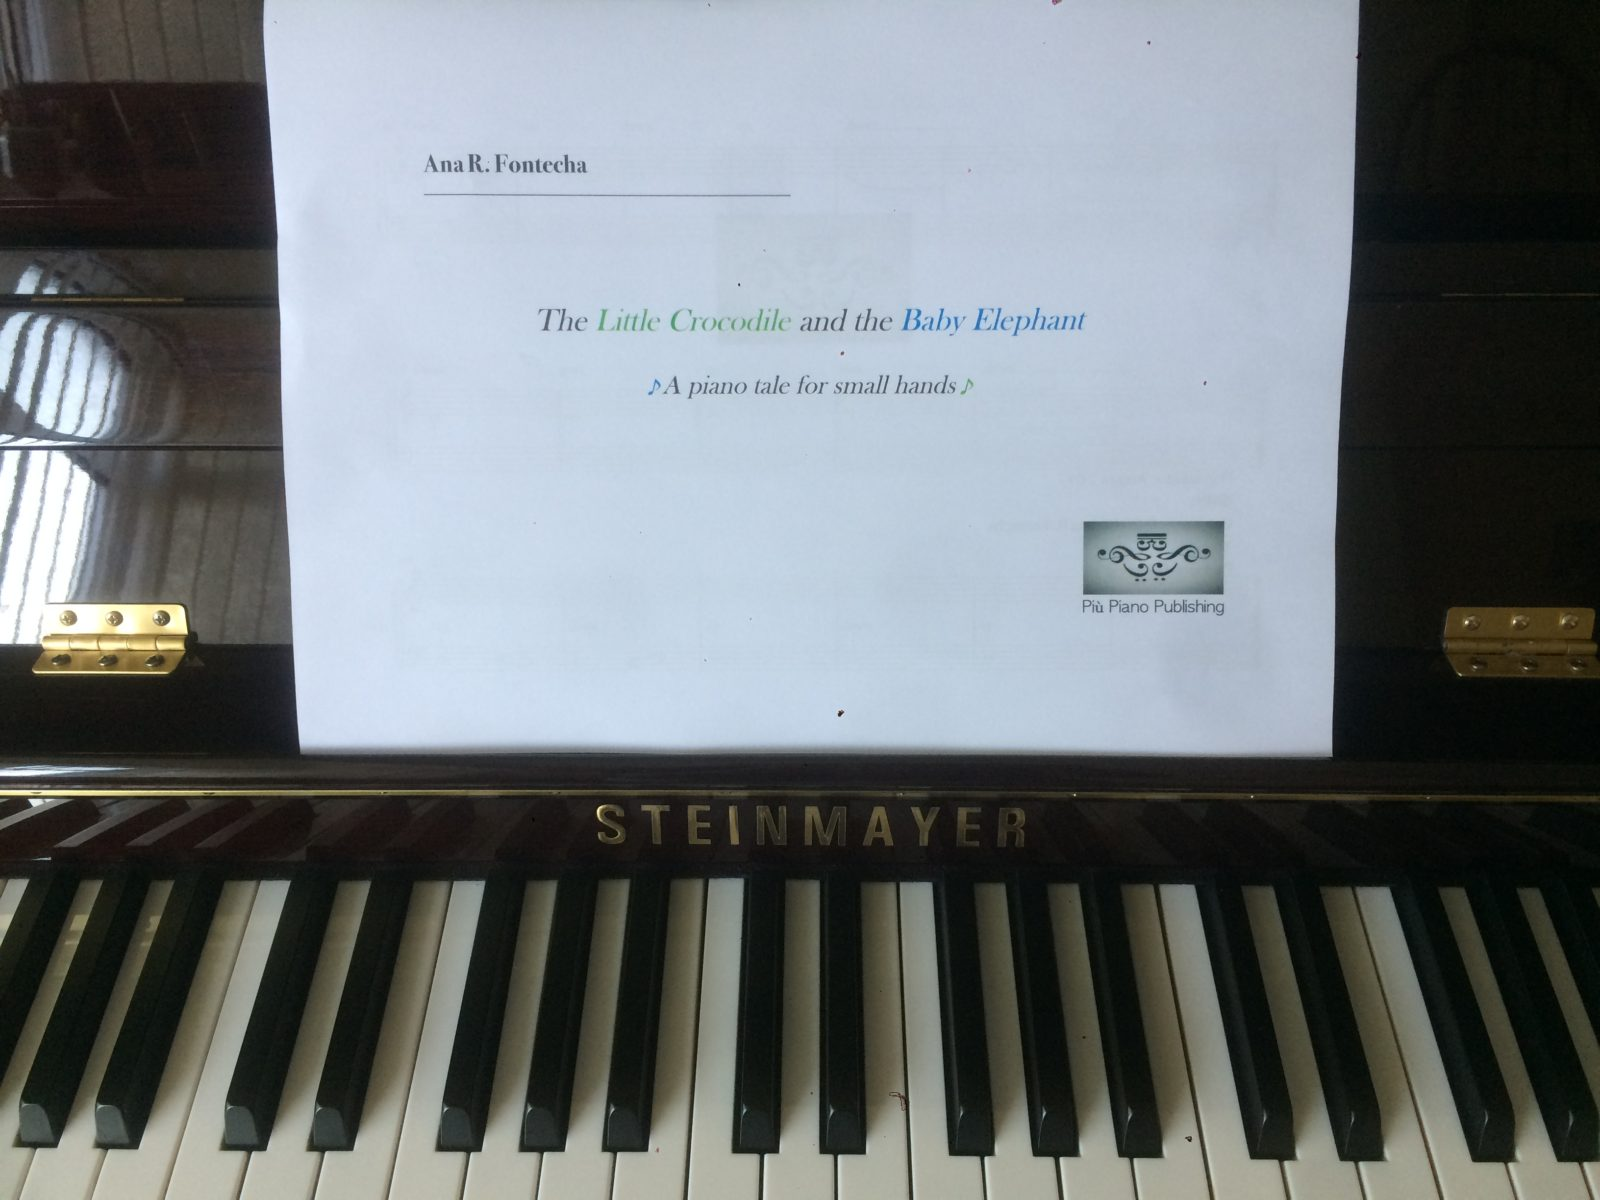 Piano method. Più Piano Publishing